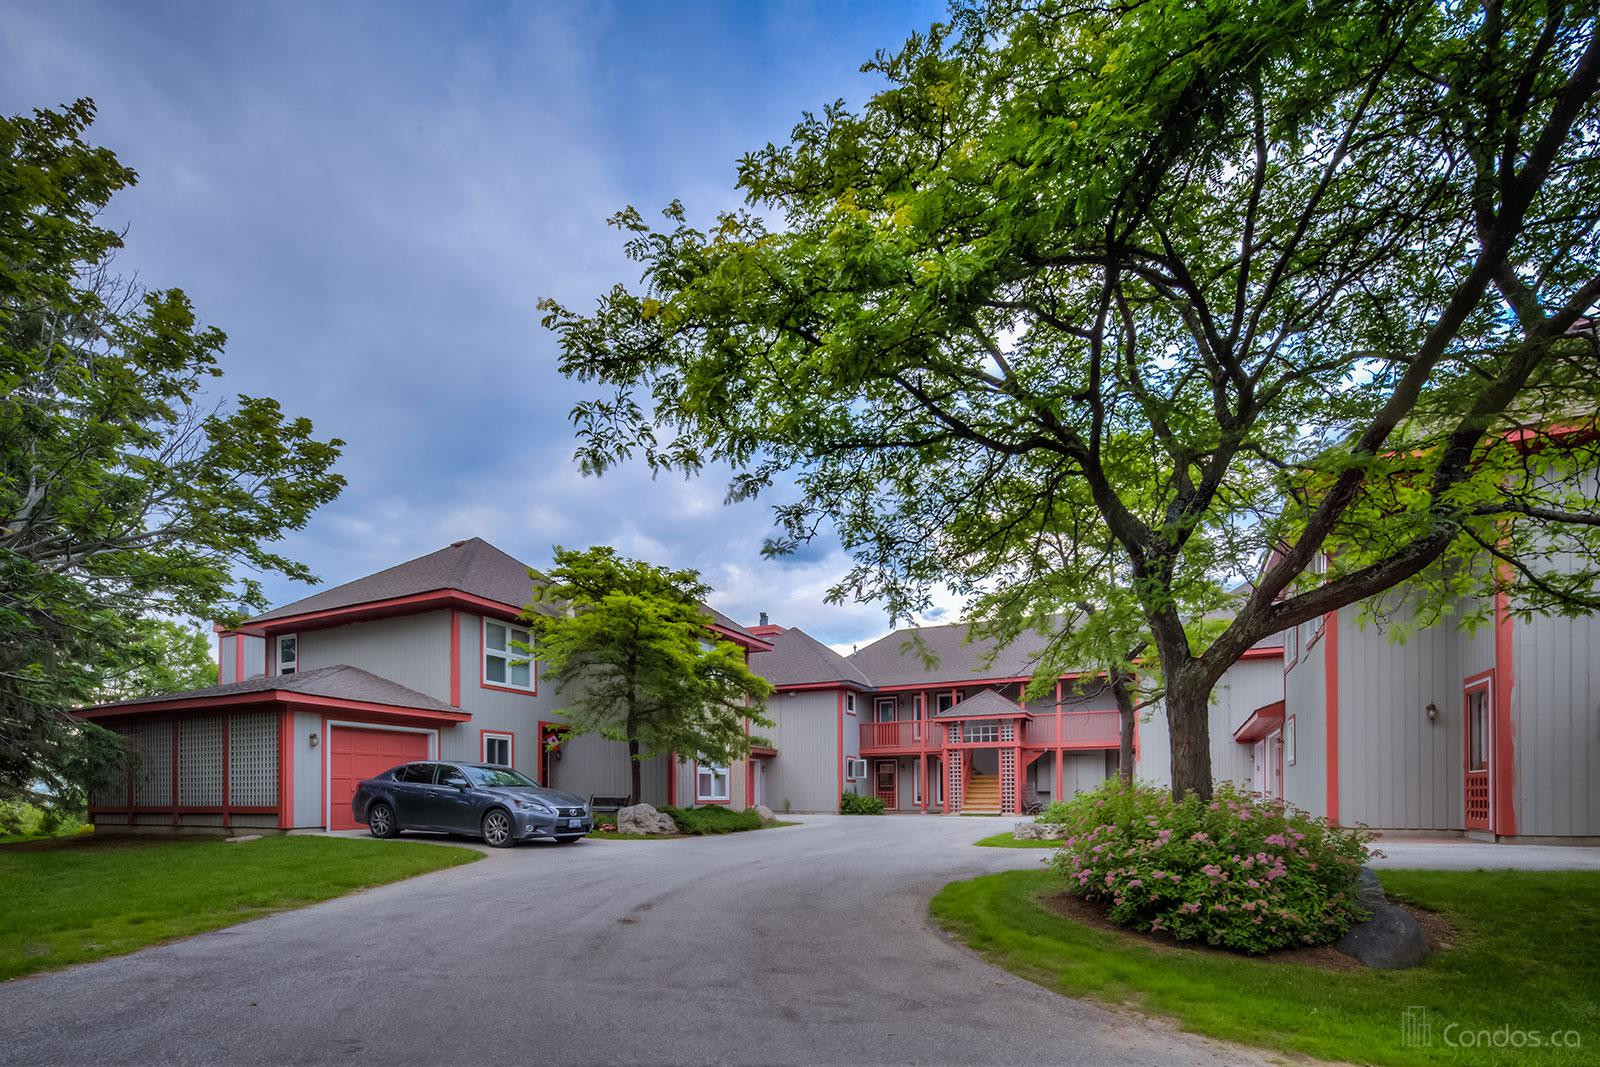 Suncrest Circle Condos at 800 Suncrest Cir, Collingwood 0